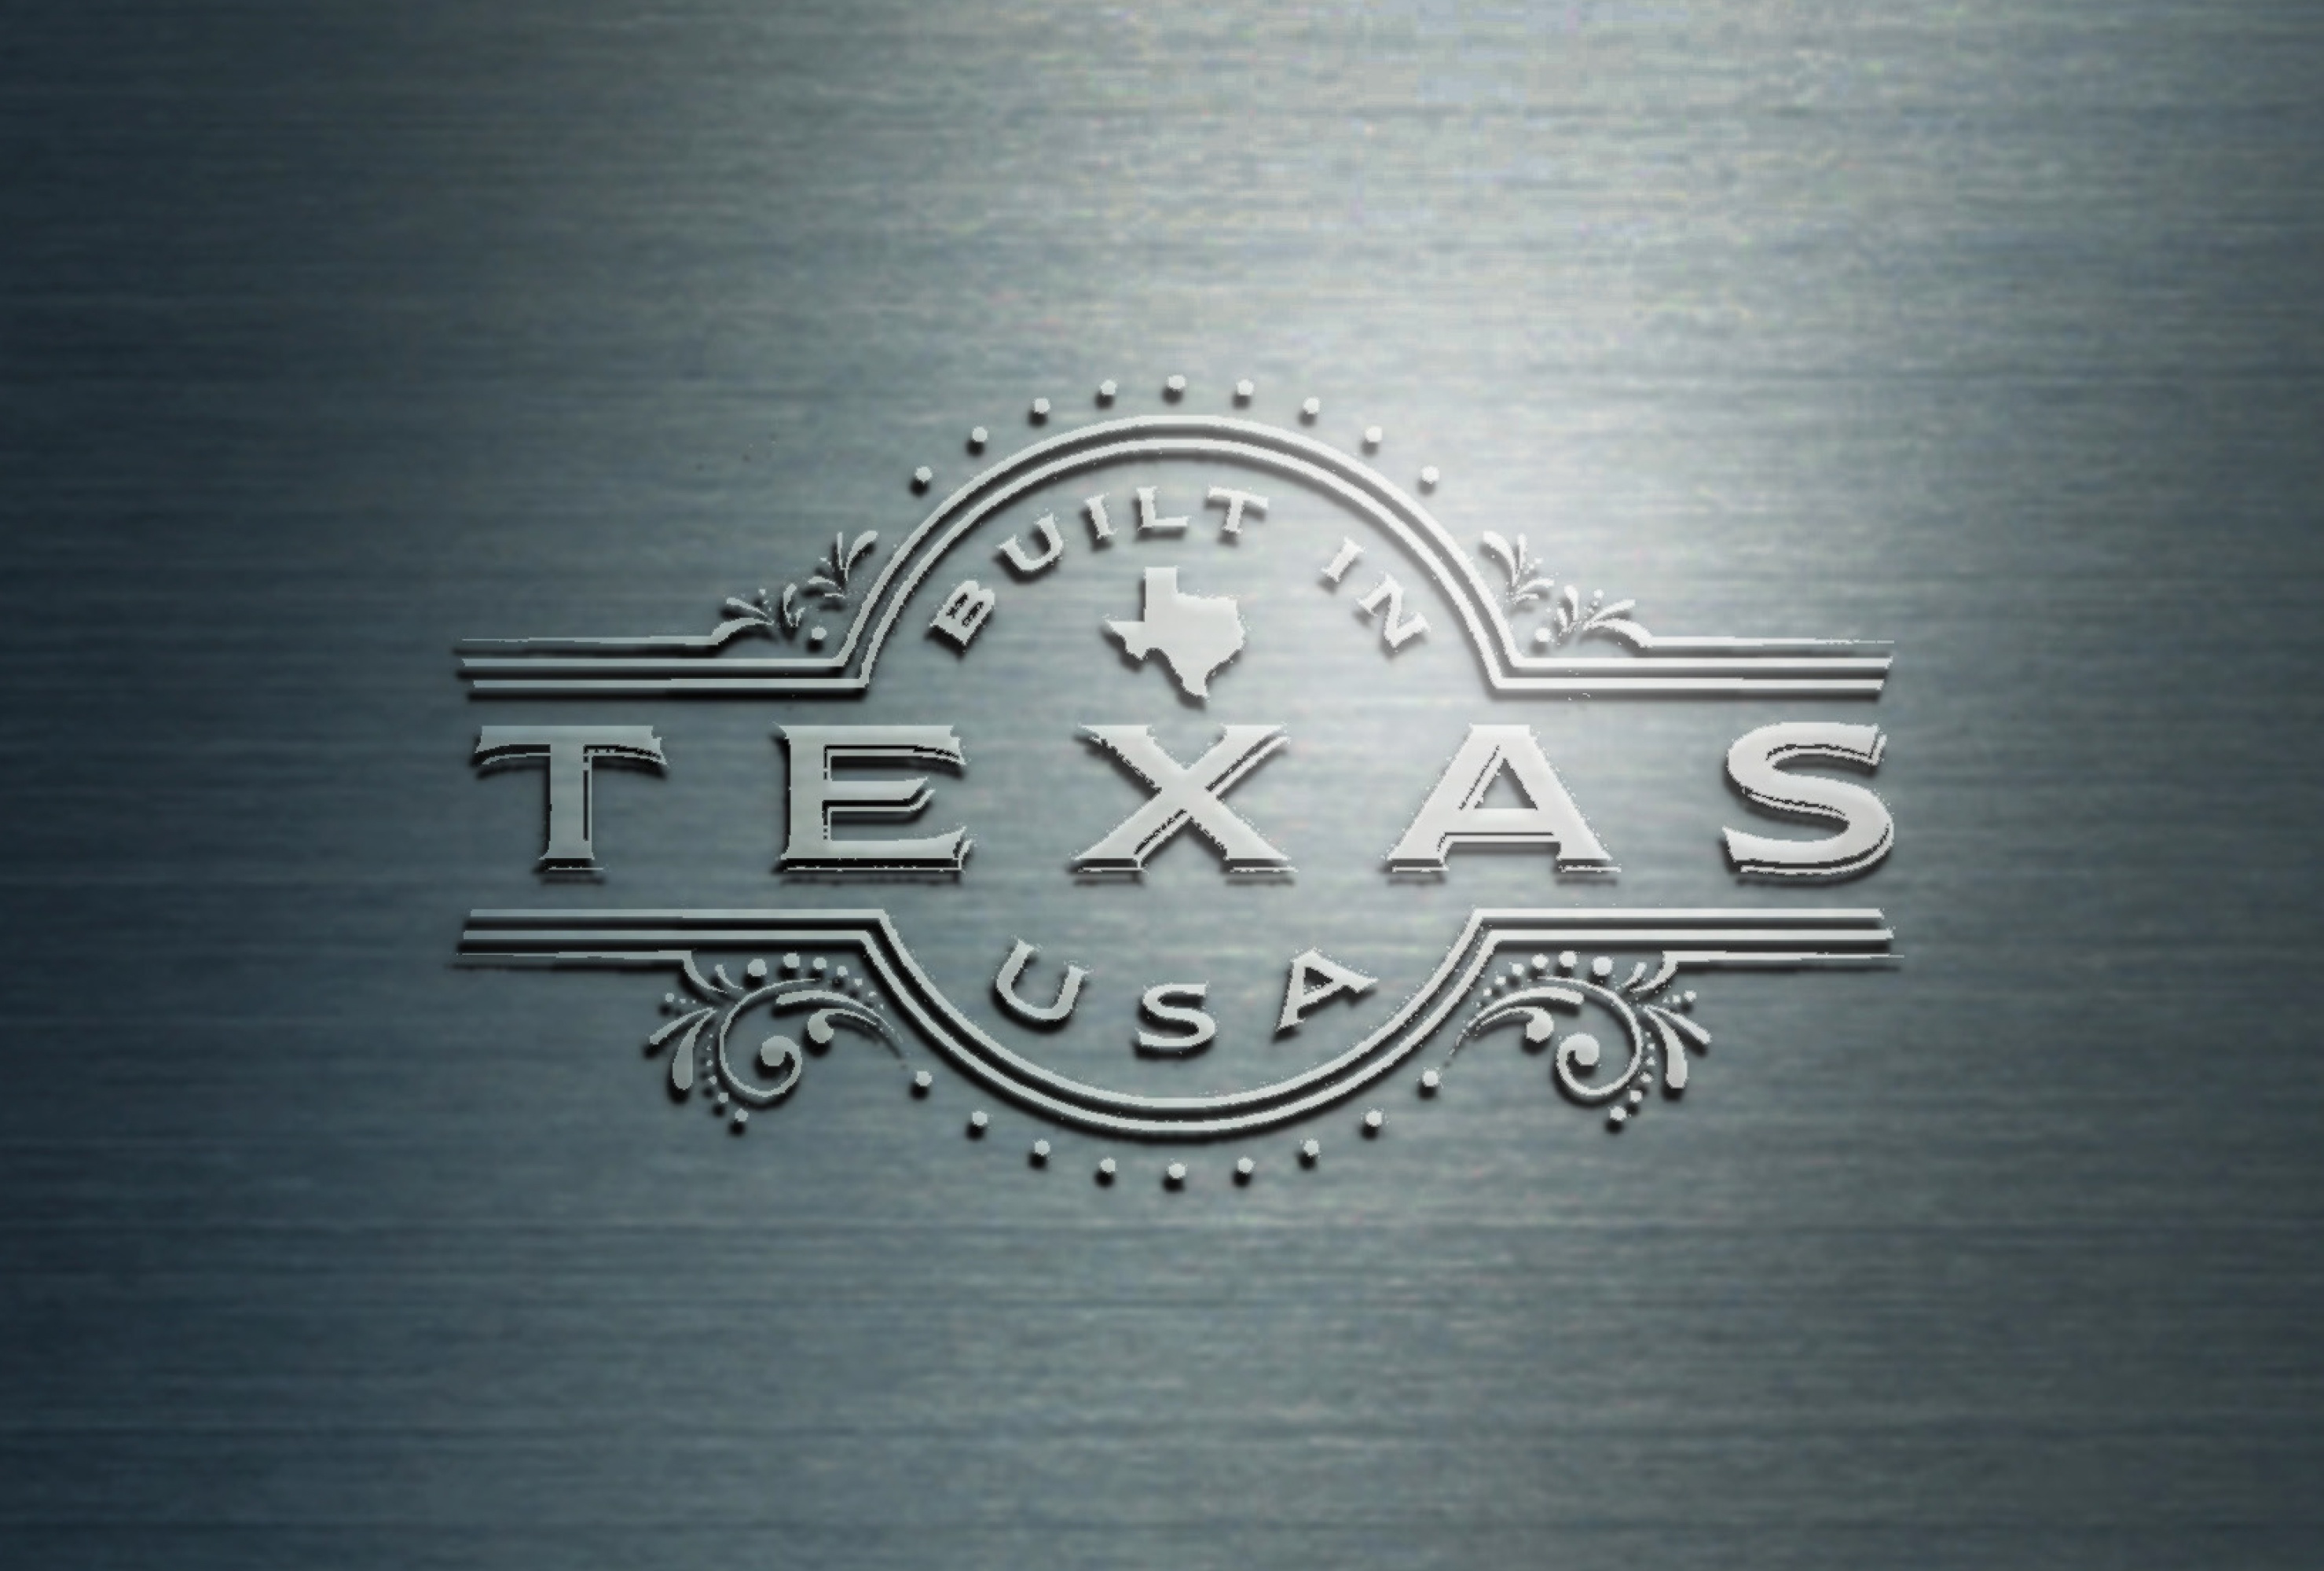 MADE IN TEXAS LOGO